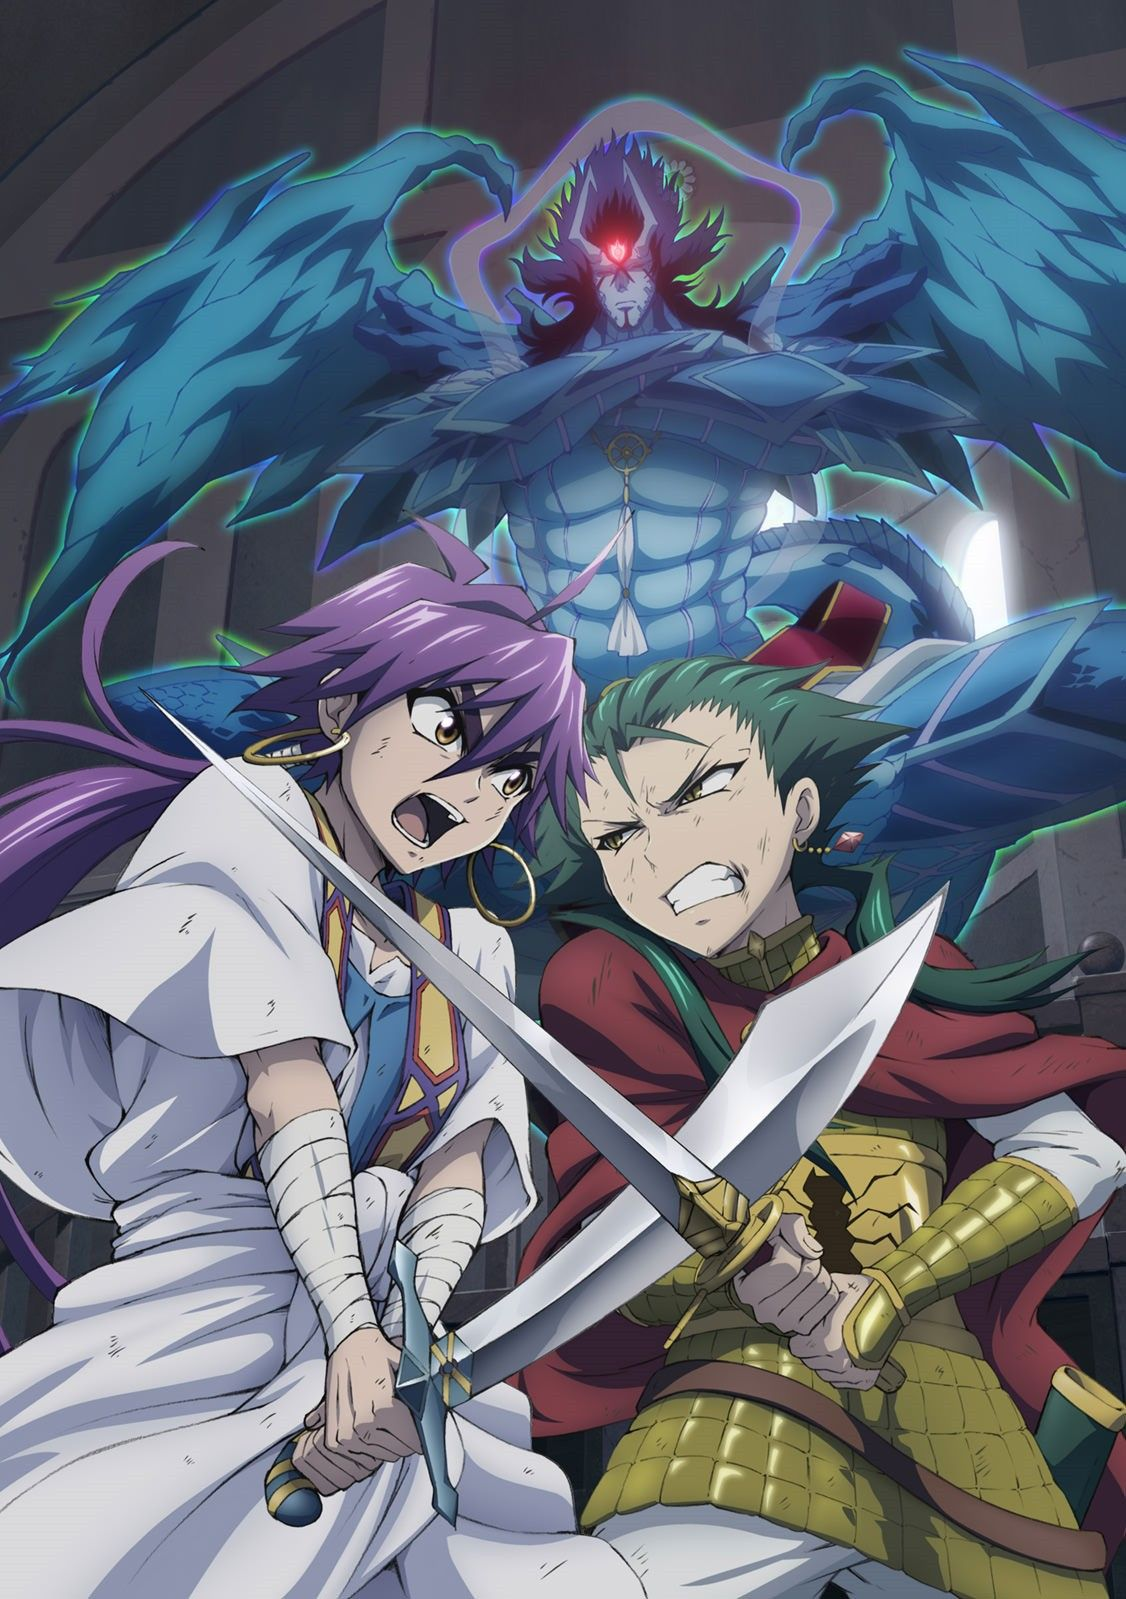 Pin by Art on Magi Sinbad magi, Anime magi, Magi